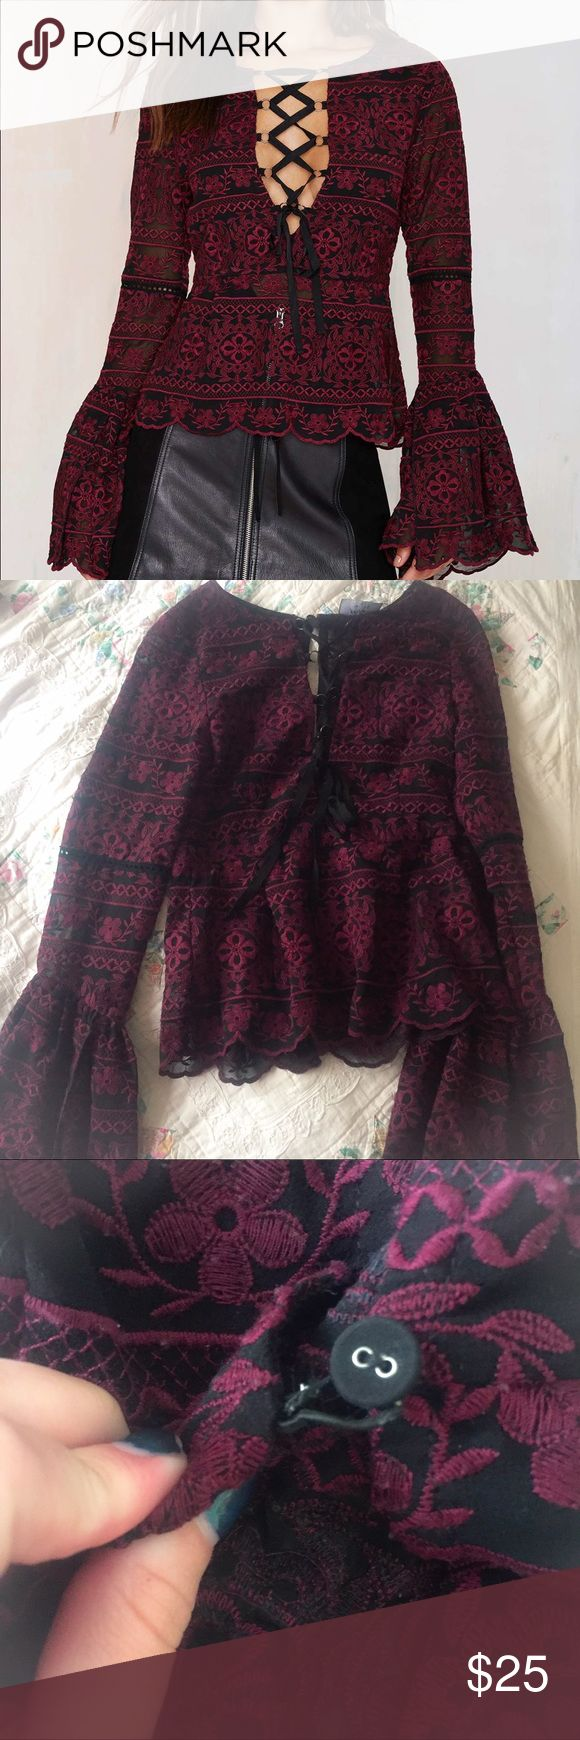 Nasty gal love her madly lace up top Nasty gal love her madly lace up bell sleeve top. Super cute and sexy. Worn 3-4 times. One of the back button closures is a little bit loose but it doesn't effect wear. Fits true to size.  ✖️NO HOLDS OR TRADES(no exceptions)✖️ No lowest?/lowballing-$3 offers, or offering half price will be immediately declined AND BLOCKED from my closet 💲10% discount on bundles-everything must go! 💖NO NEGOTIATING IN THE COMMENTS! Nasty Gal Tops Blouses